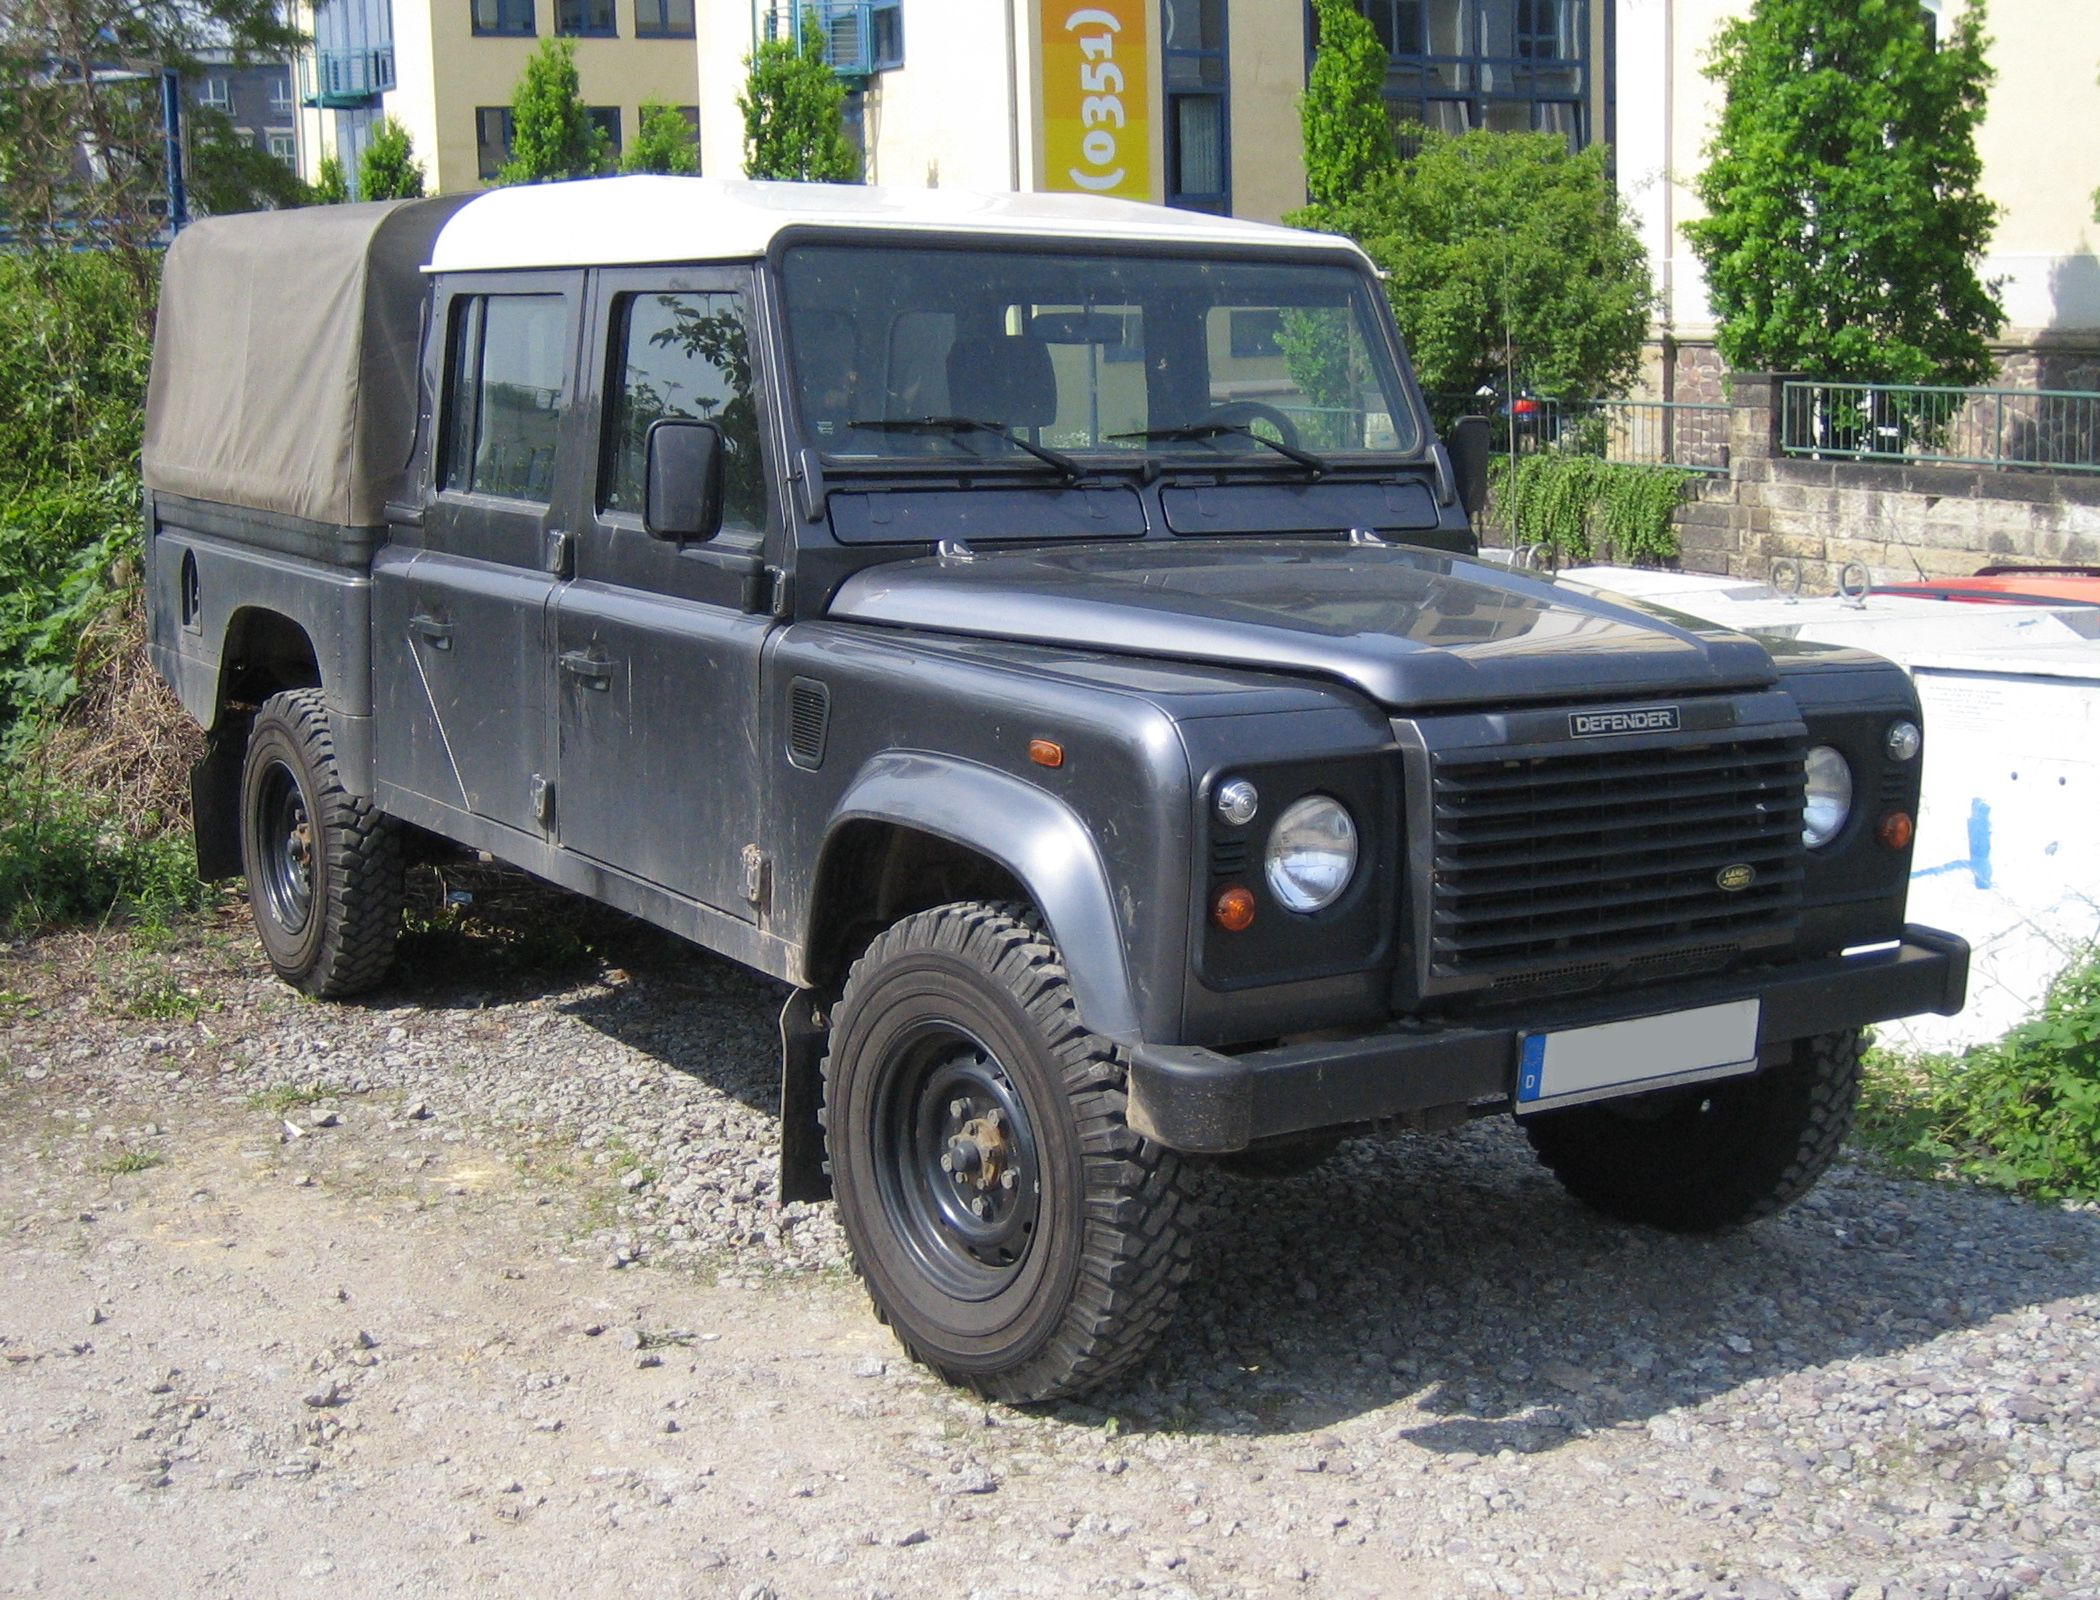 Defender 110 2018 >> File:Land Rover Defender 130.jpg - Wikimedia Commons